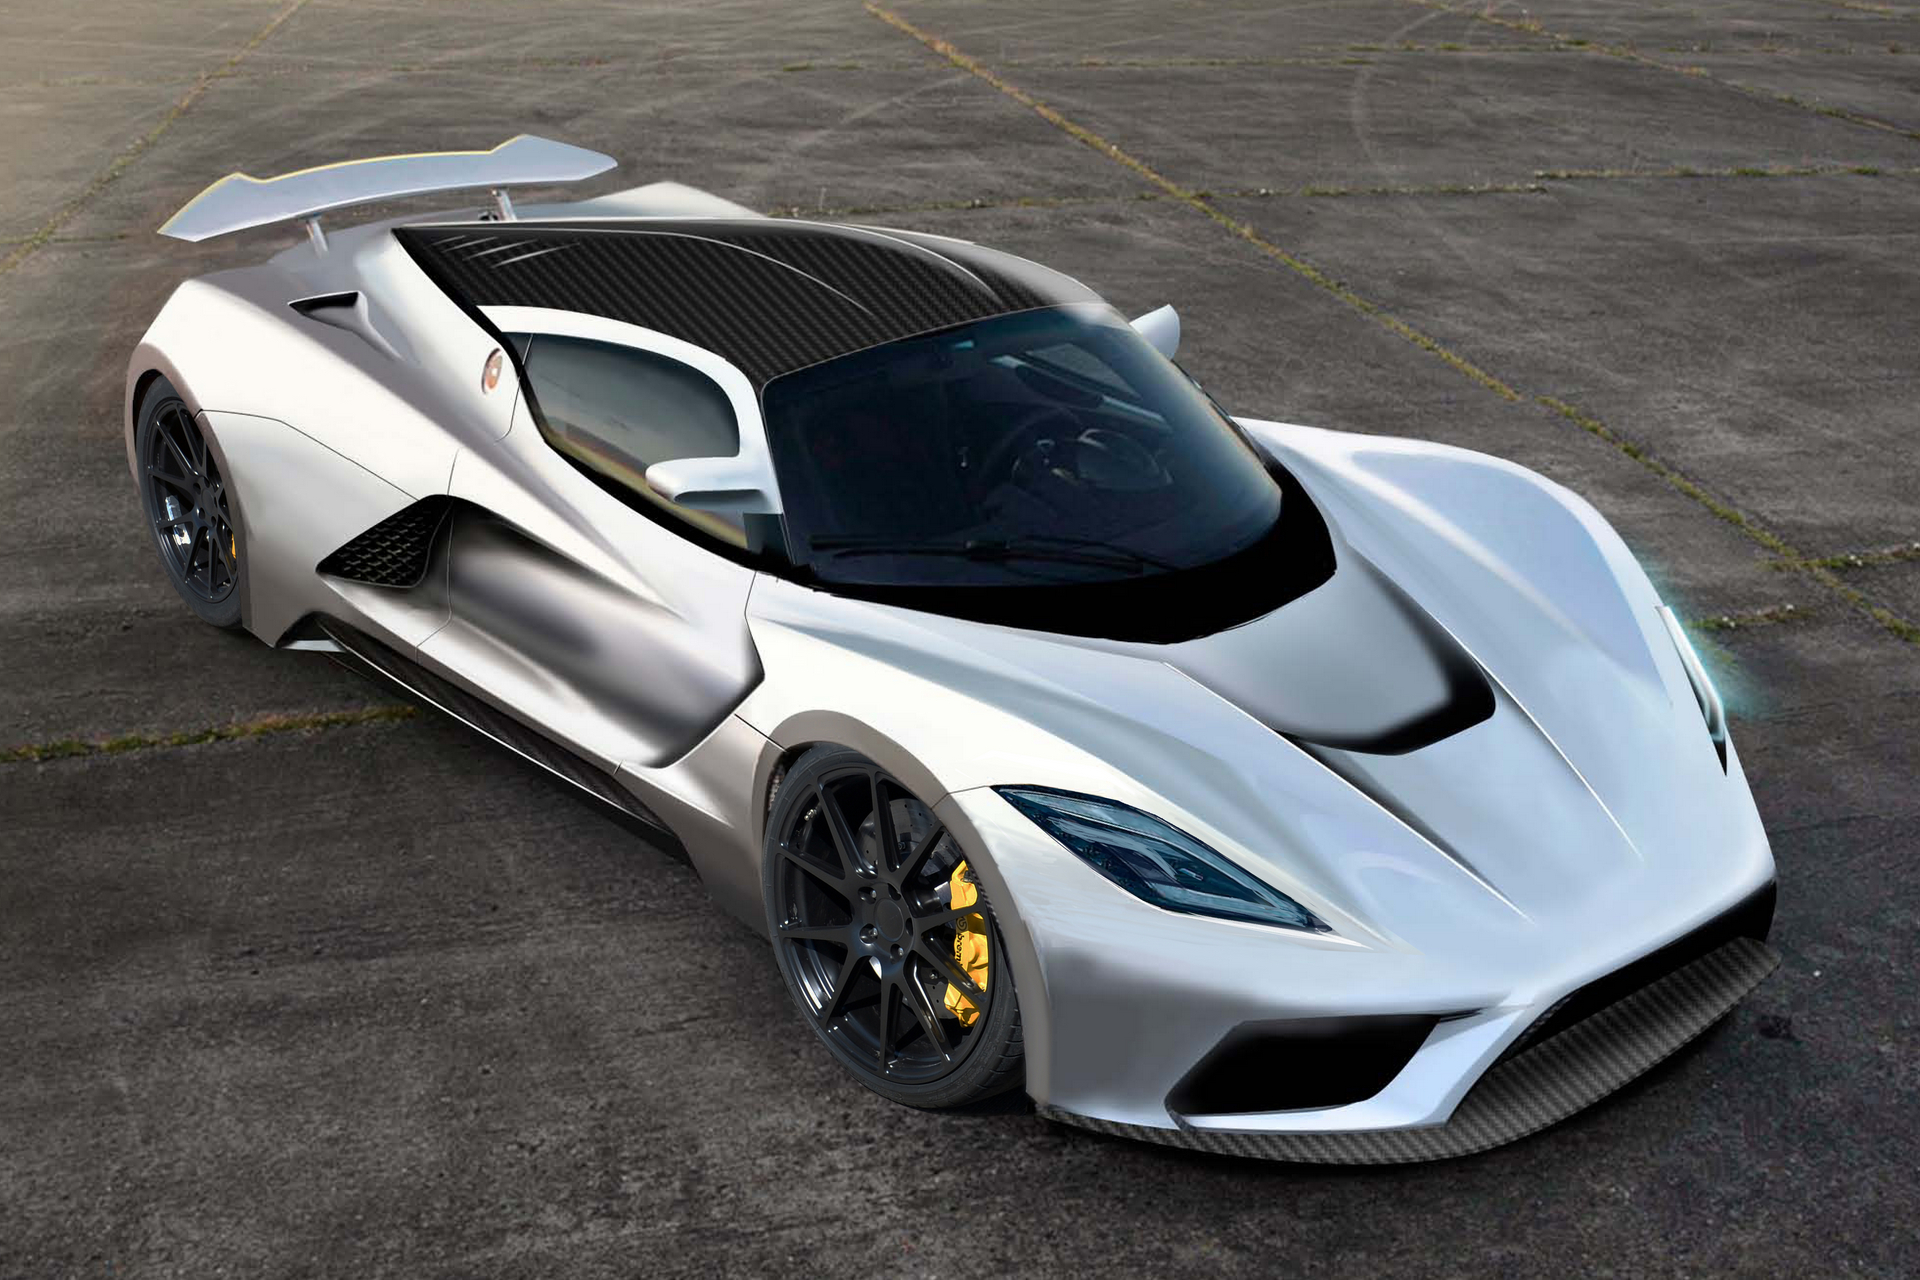 top five fastest cars in the world - Super Fast Cars In The World